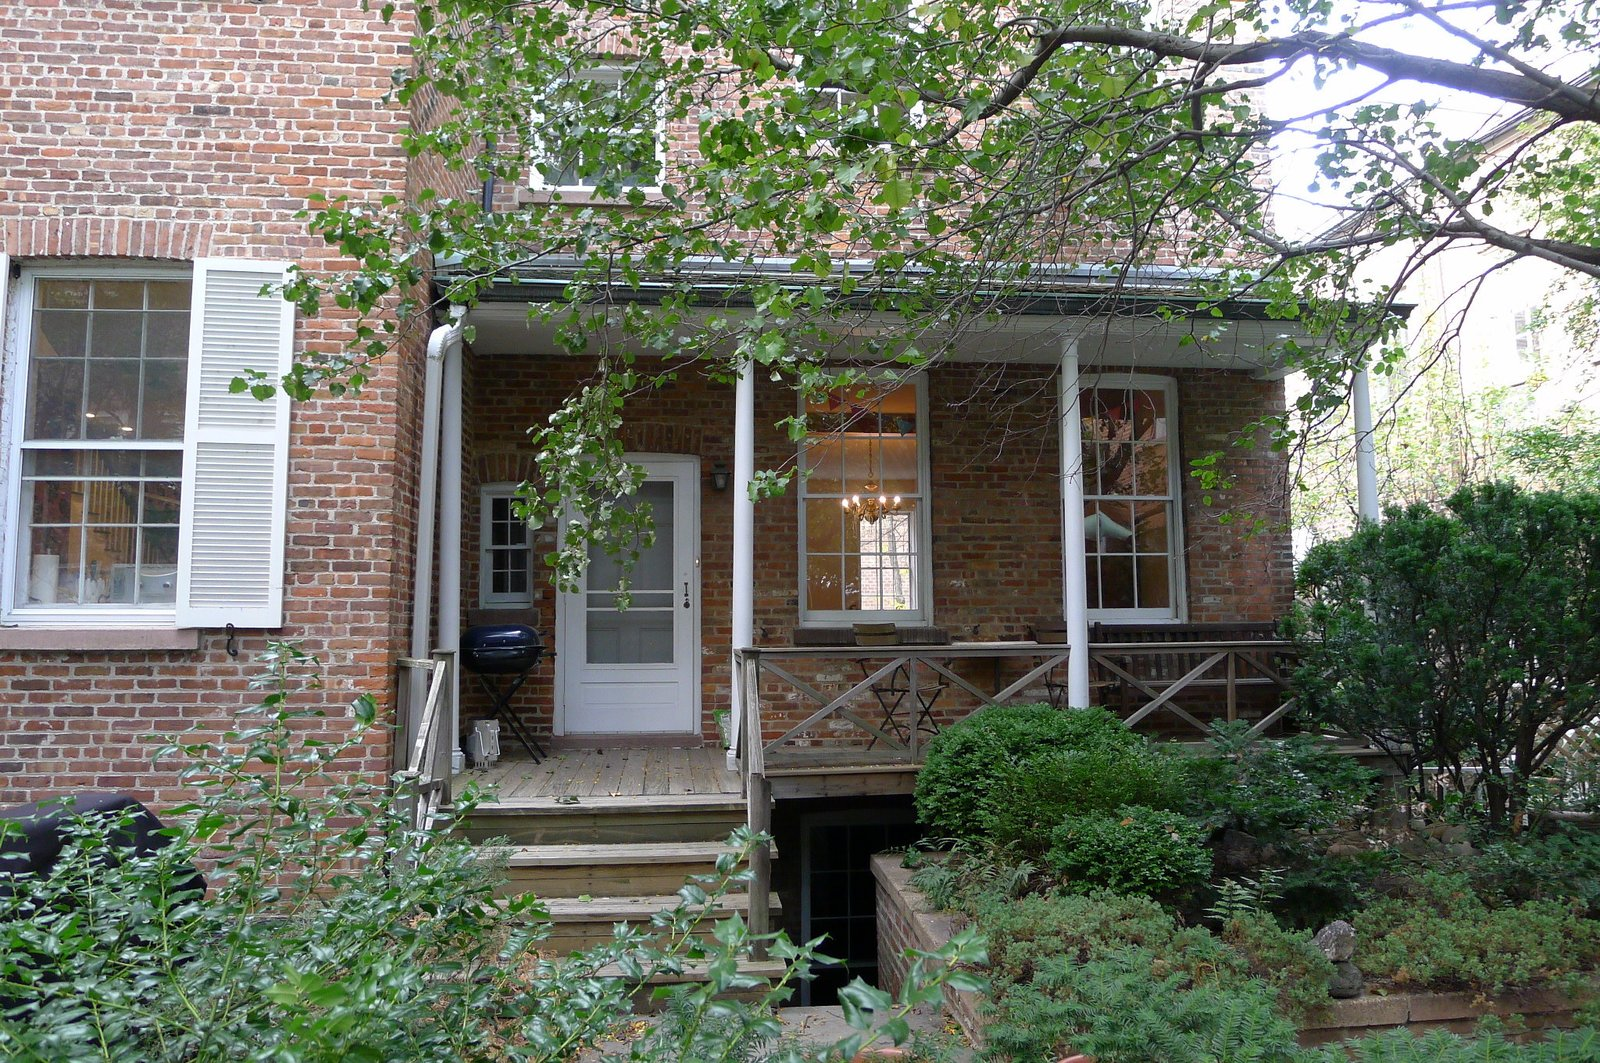 The wooden porch in the rear yard was deemed illegal during the Department of Buildings process. Wood is not allowed, and it had to be remade with non-combustible materials.